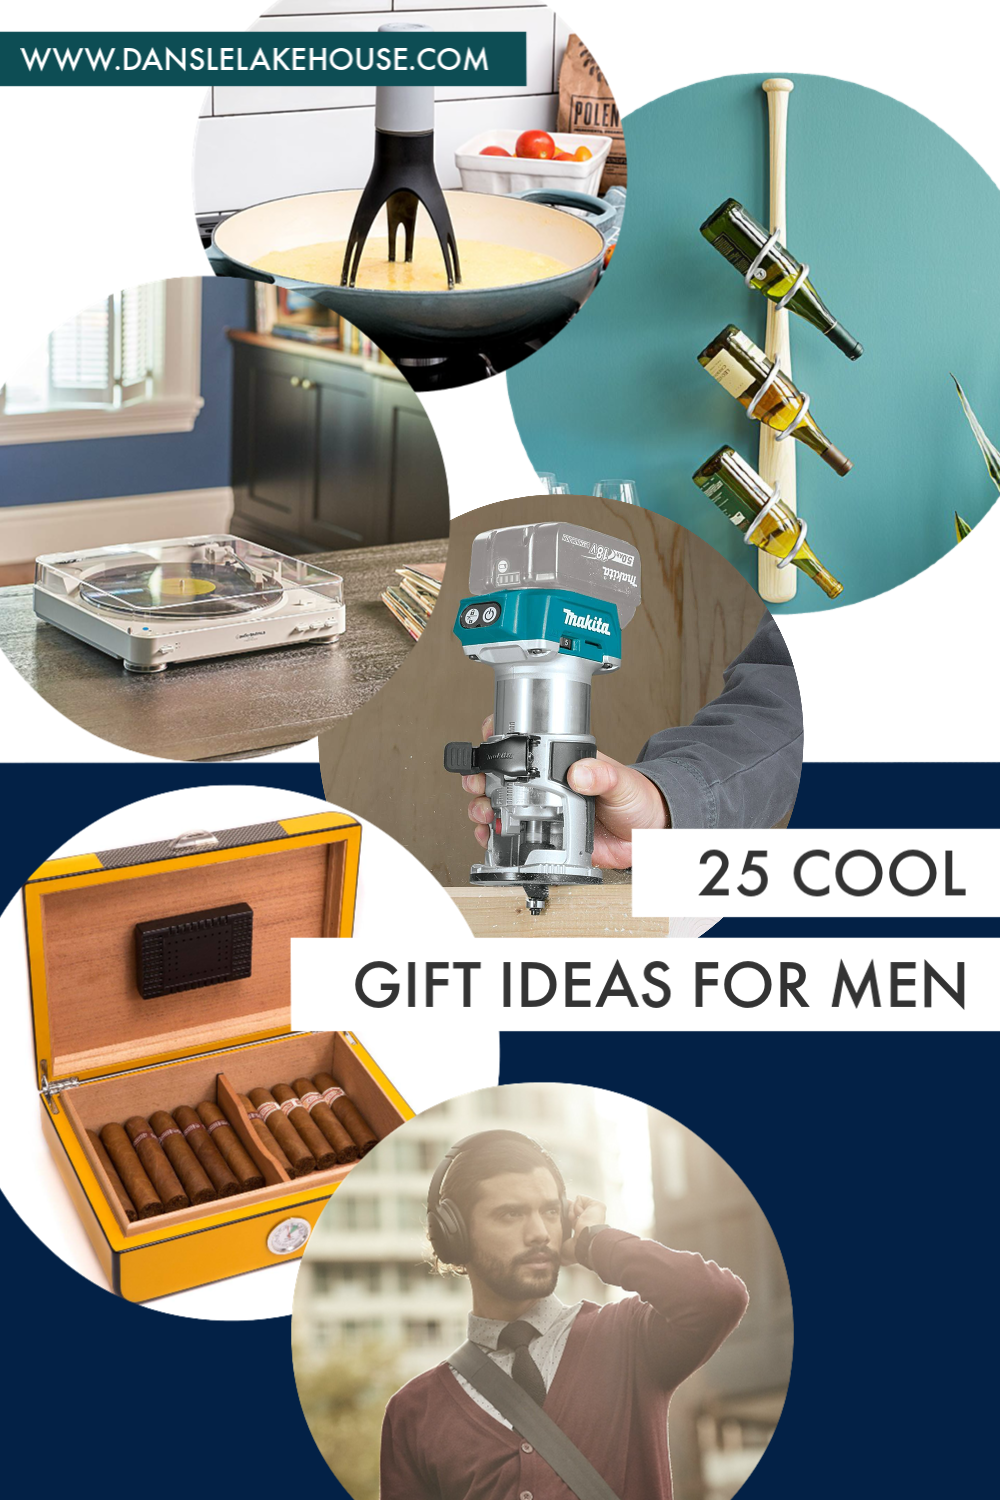 Holiday Gift Guide: 25 Gift Ideas for Men